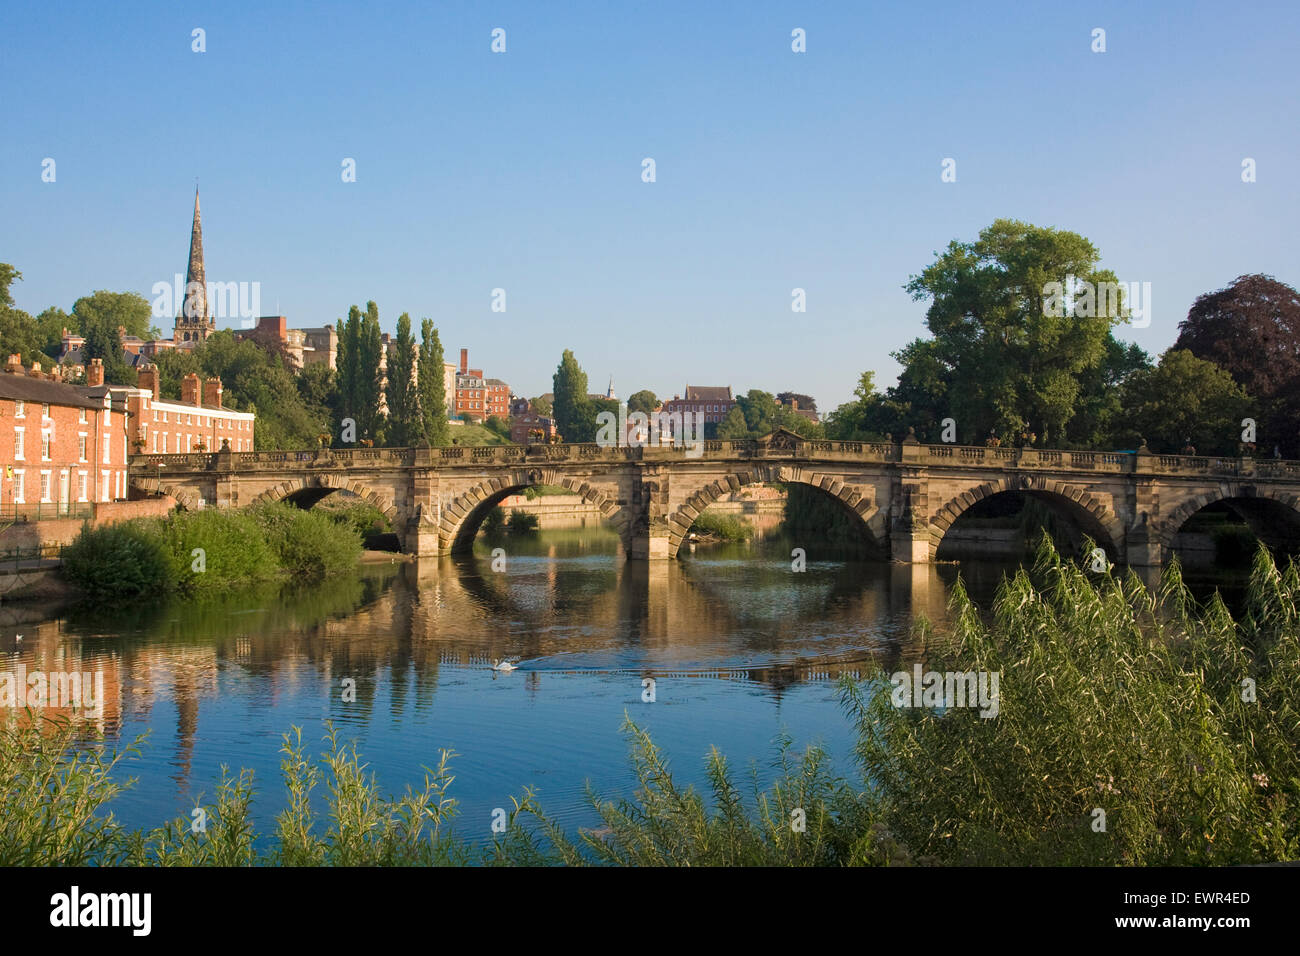 Under clear blue skies, English Bridge crosses the River Severn in Shrewsbury, Shropshire. Picture taken early in - Stock Image